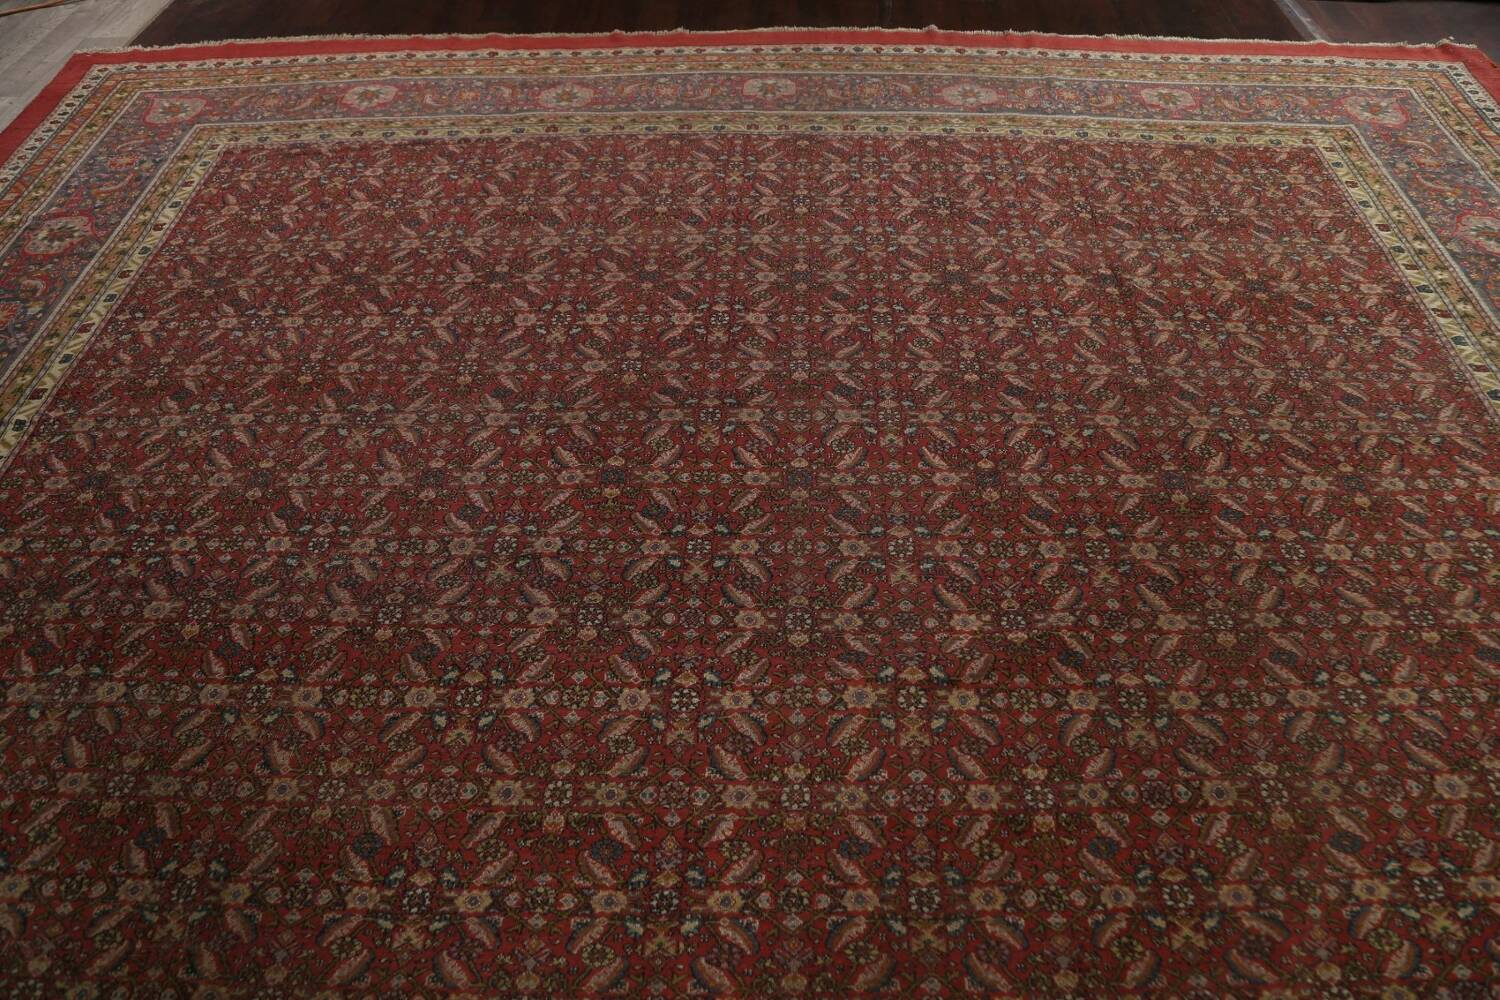 Antique Vegetable Dye Sultanabad Persian Rug 13x20 image 12